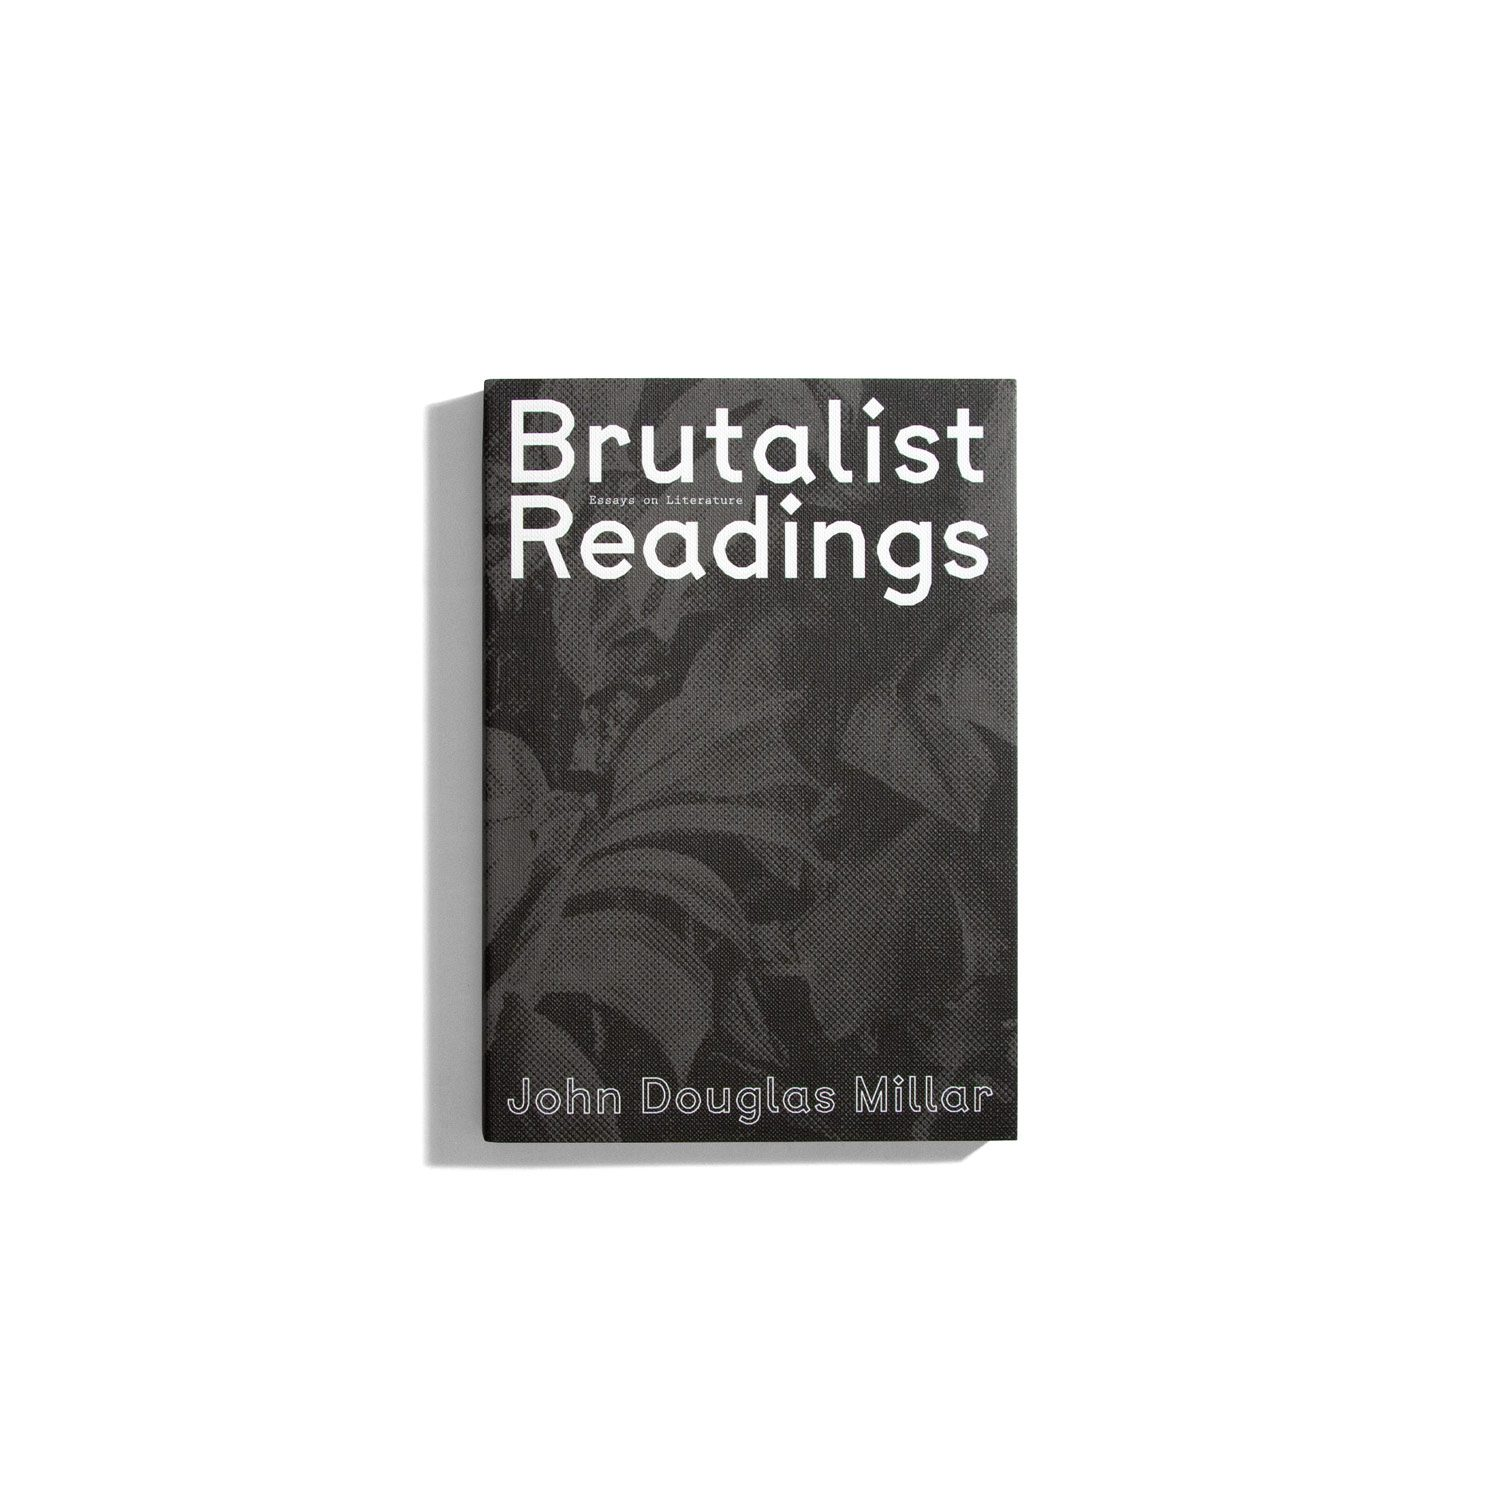 Brutalist Readings